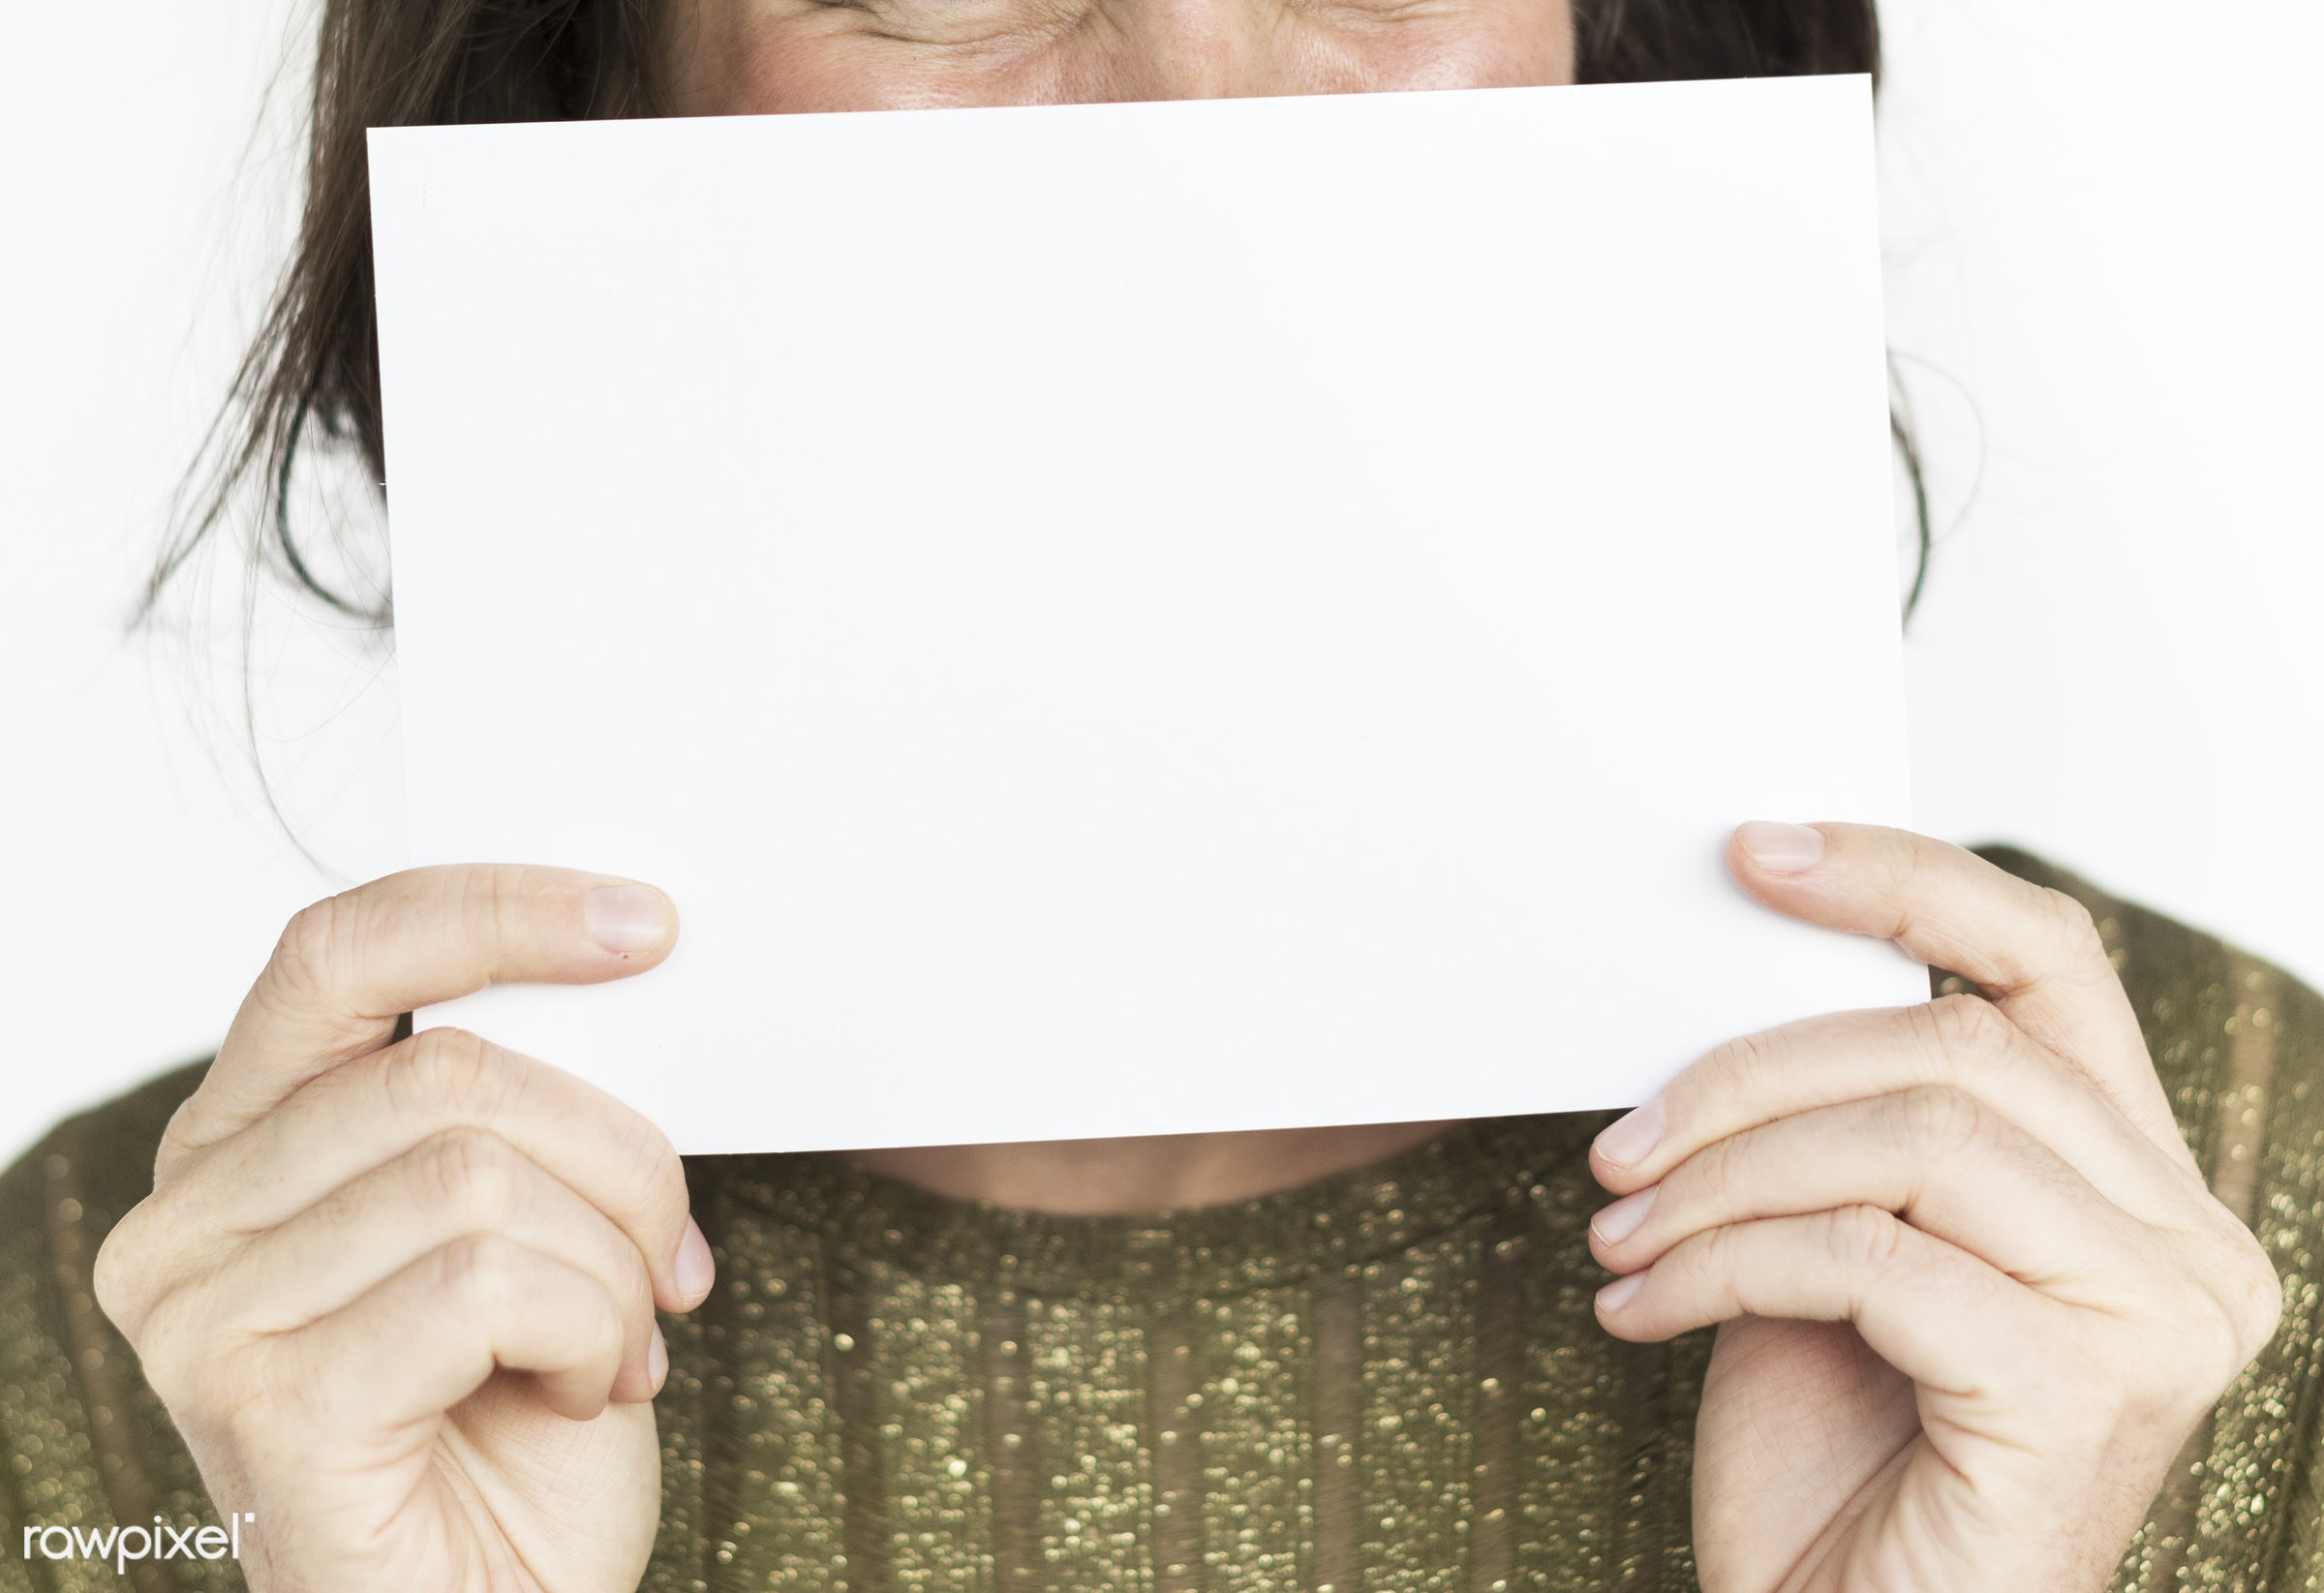 studio, expression, person, holding, cover mouth, rights, people, placard, cover, woman, smile, cheerful, smiling, isolated...